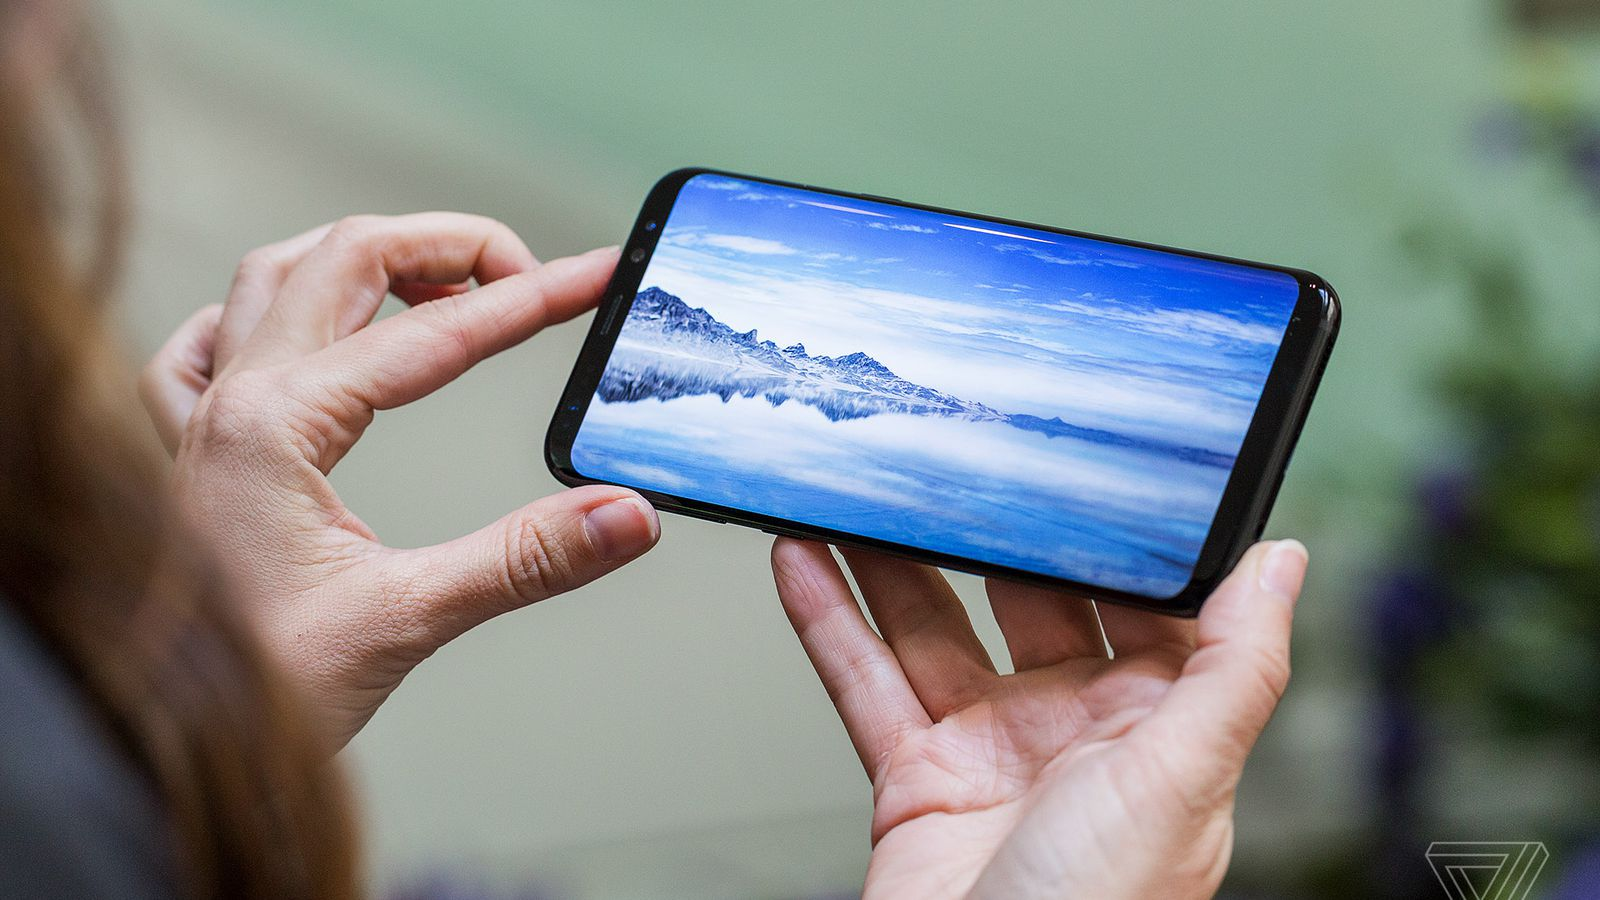 The 6 biggest announcements from the Galaxy S8 event